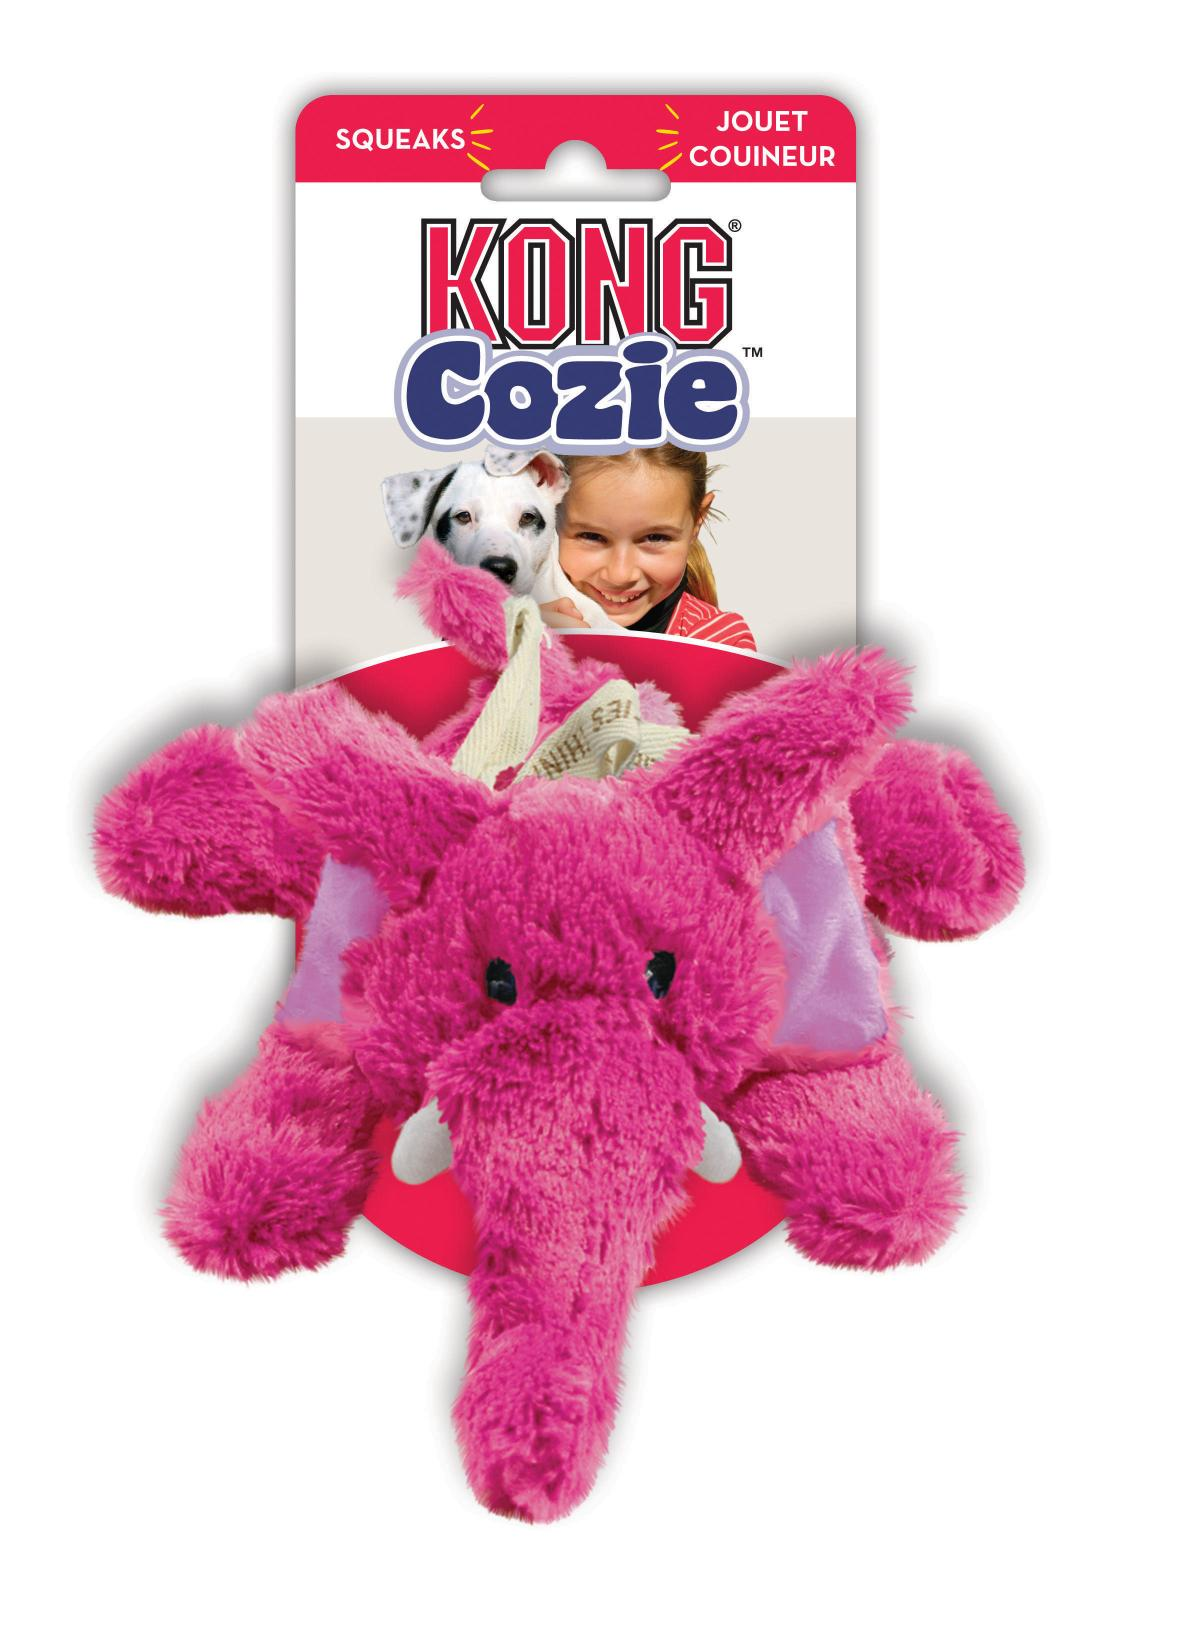 KONG Cozie Elmer Elephant - Medium | Positive Dog Products | Adelaide